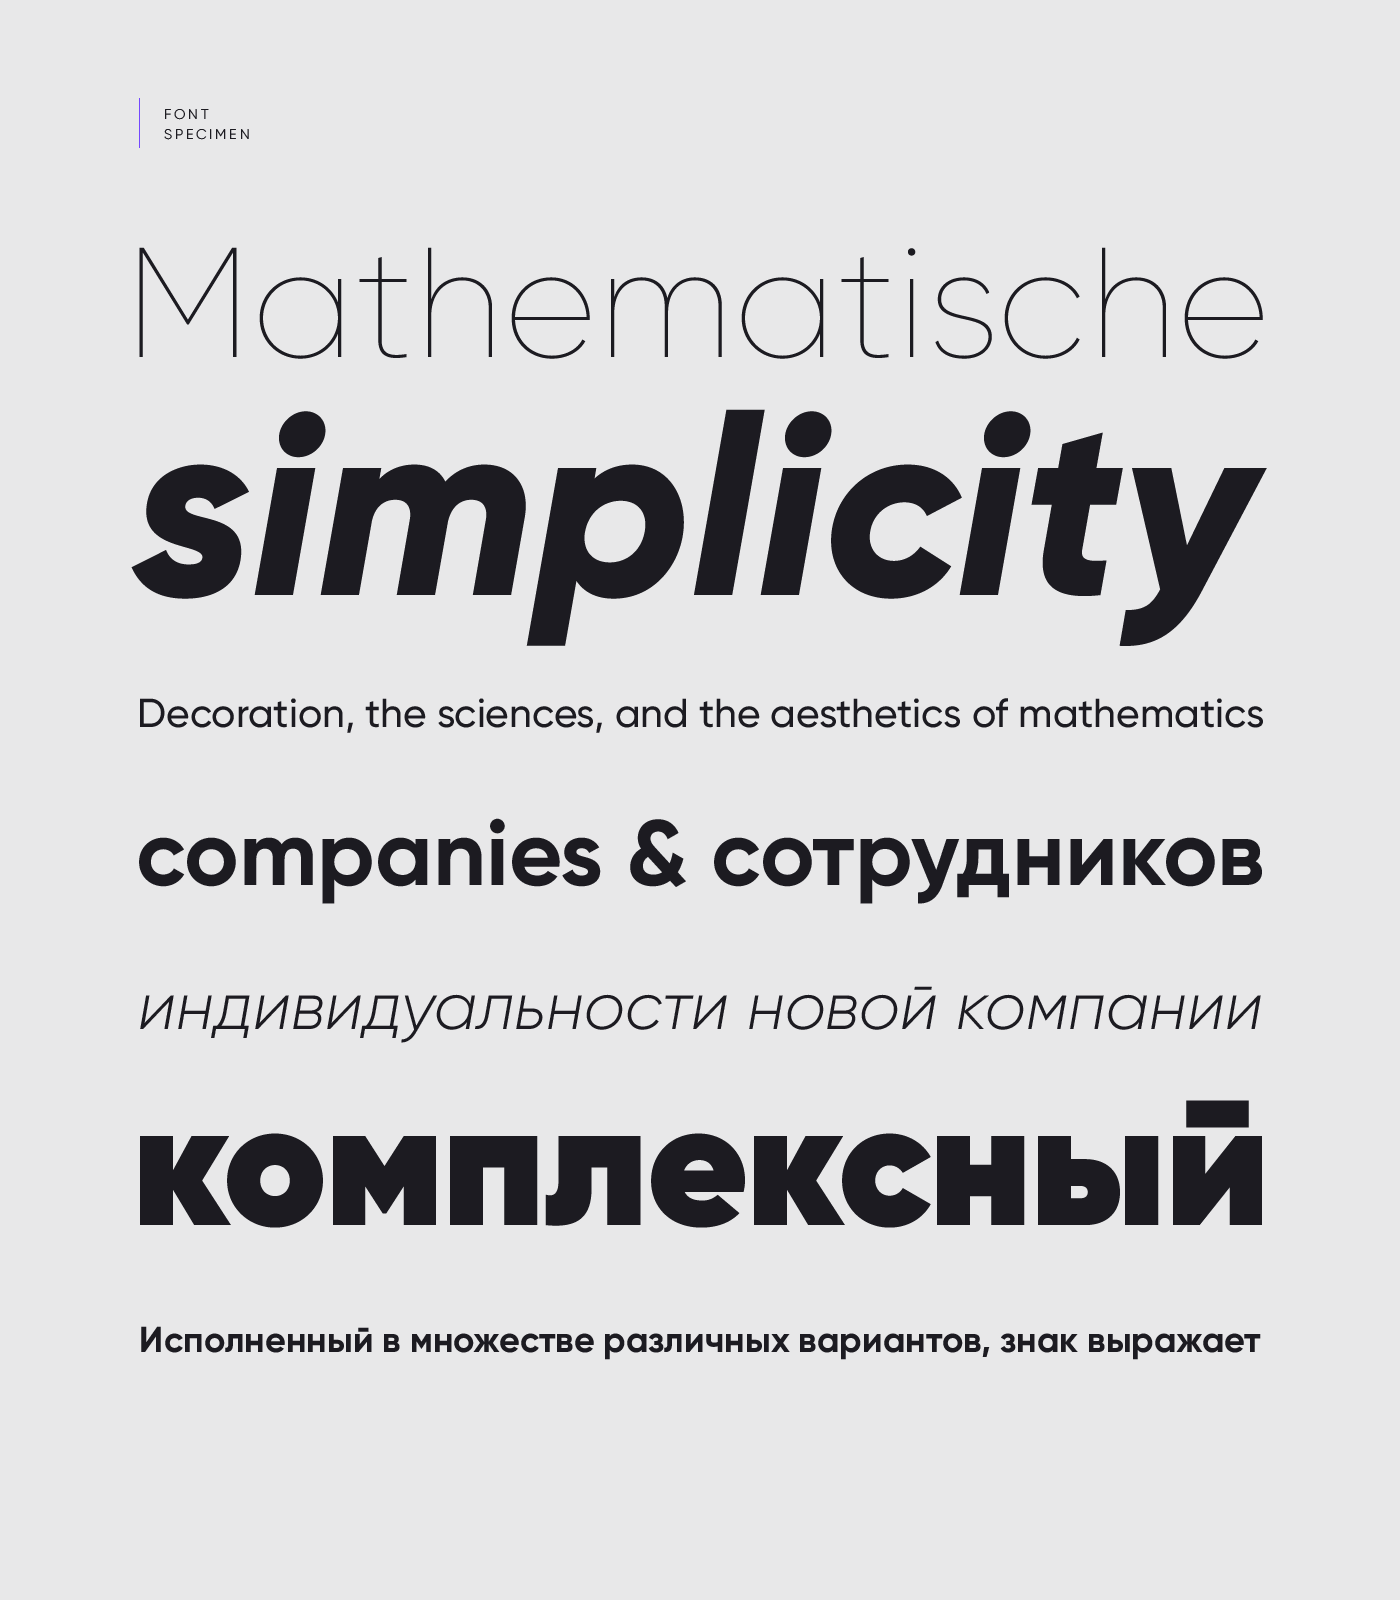 helvetica cyrillic font free download